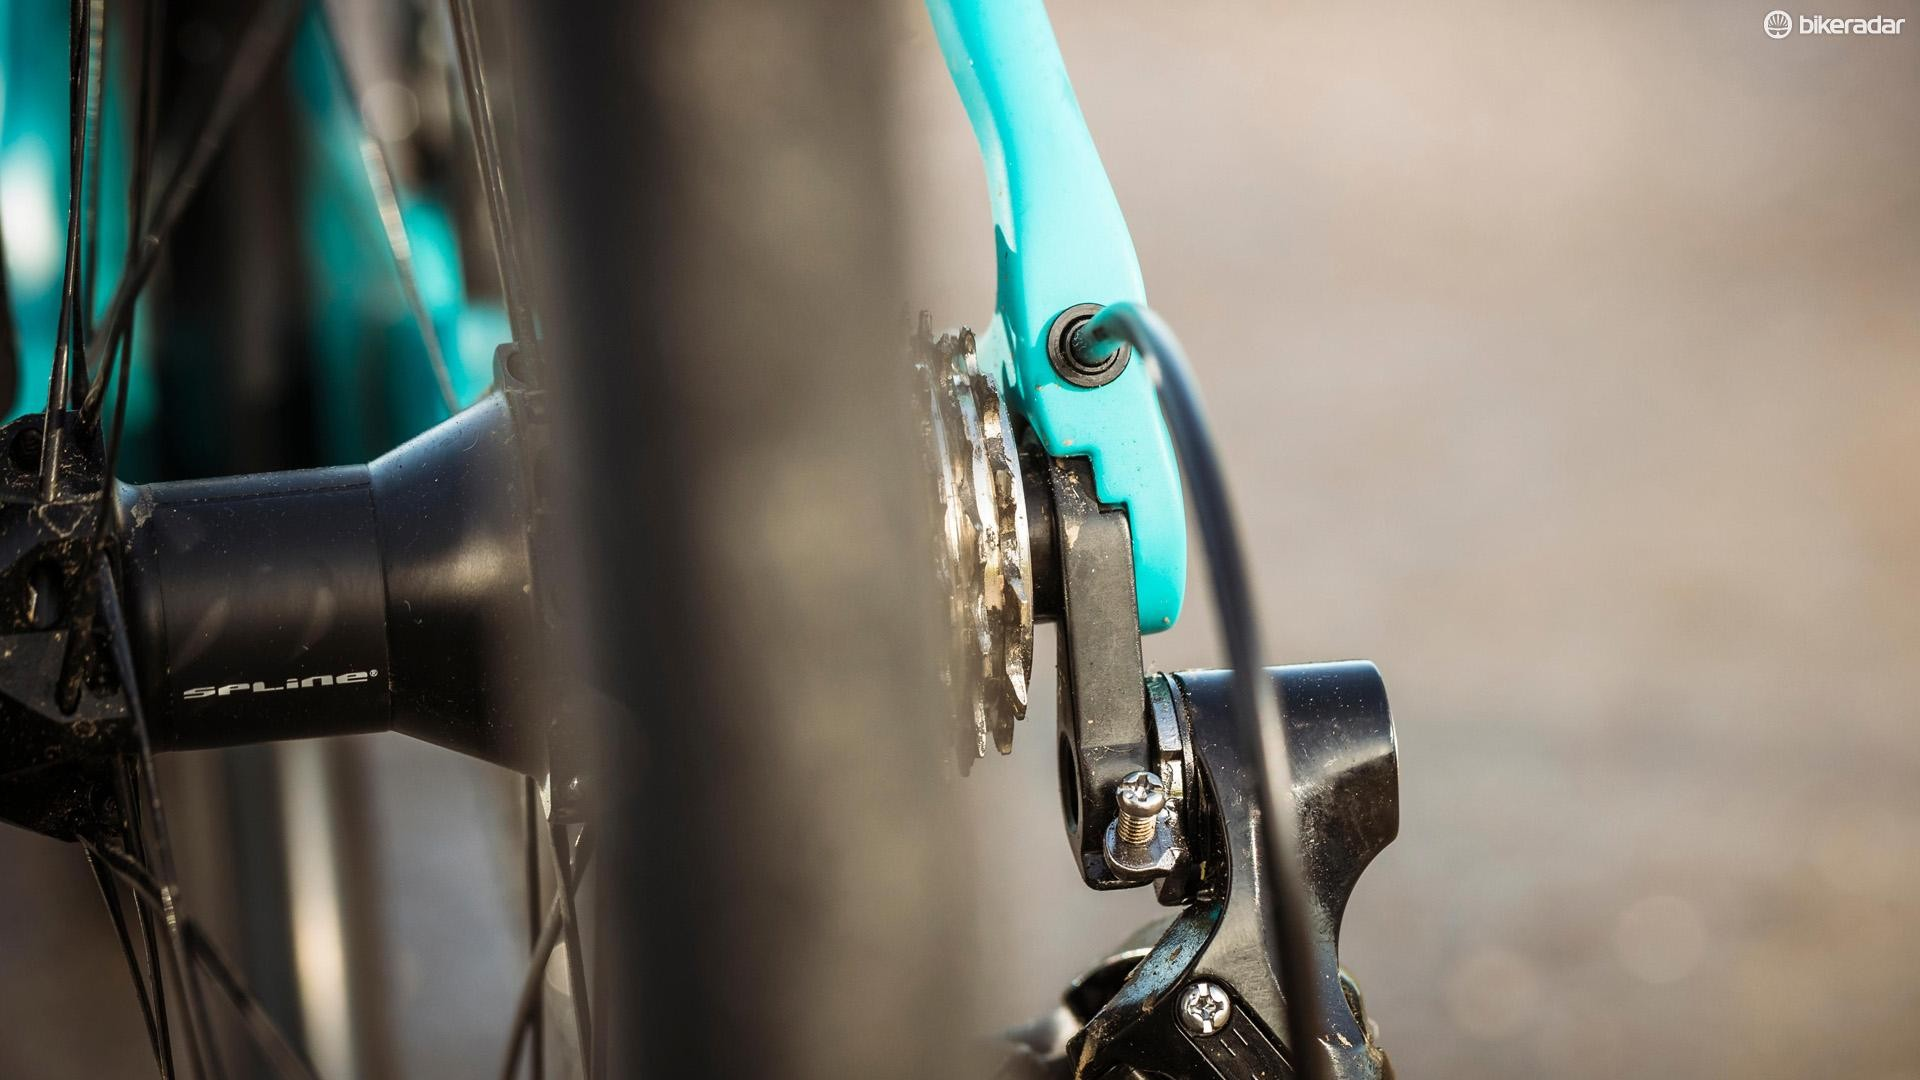 Internal cable routing keeps this bike looking sleek and speedy